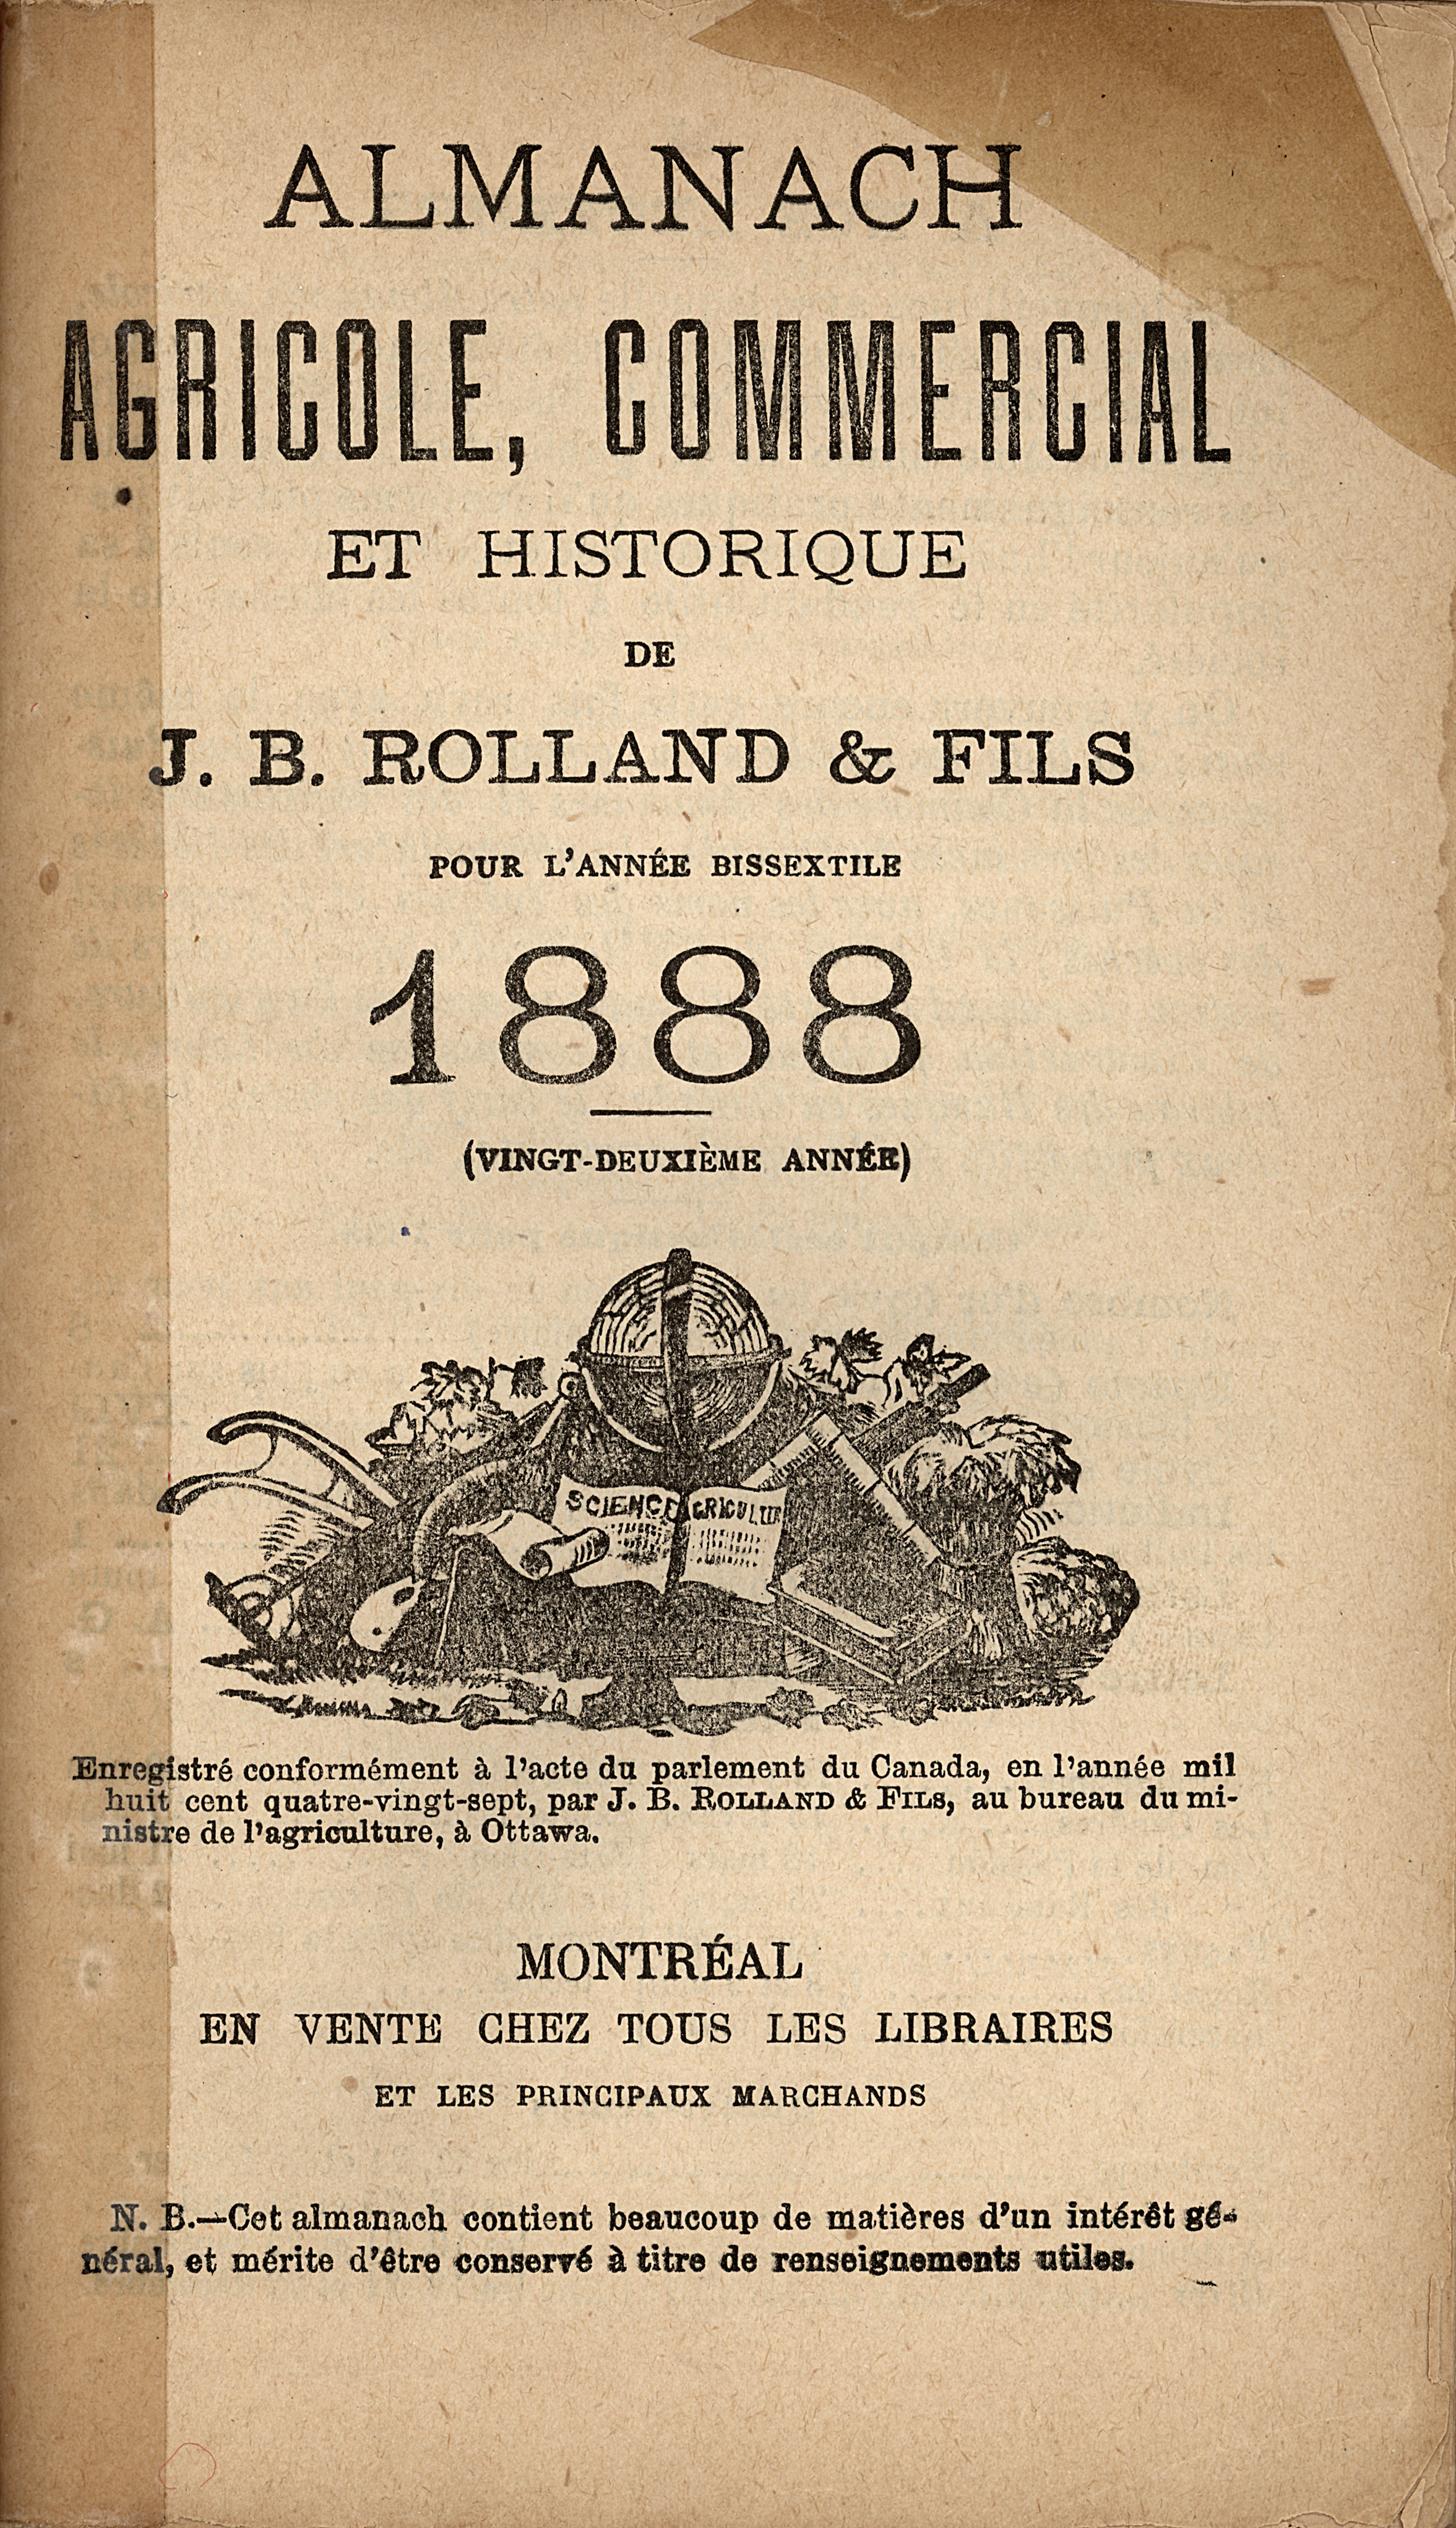 Image of the cover page of the Almanach agricole, commercial et historique for 1888, published by J.B. Rolland & fils. The page contains text printed in black ink with, at the centre, an engraving of a globe surrounded by a number of farm implements.